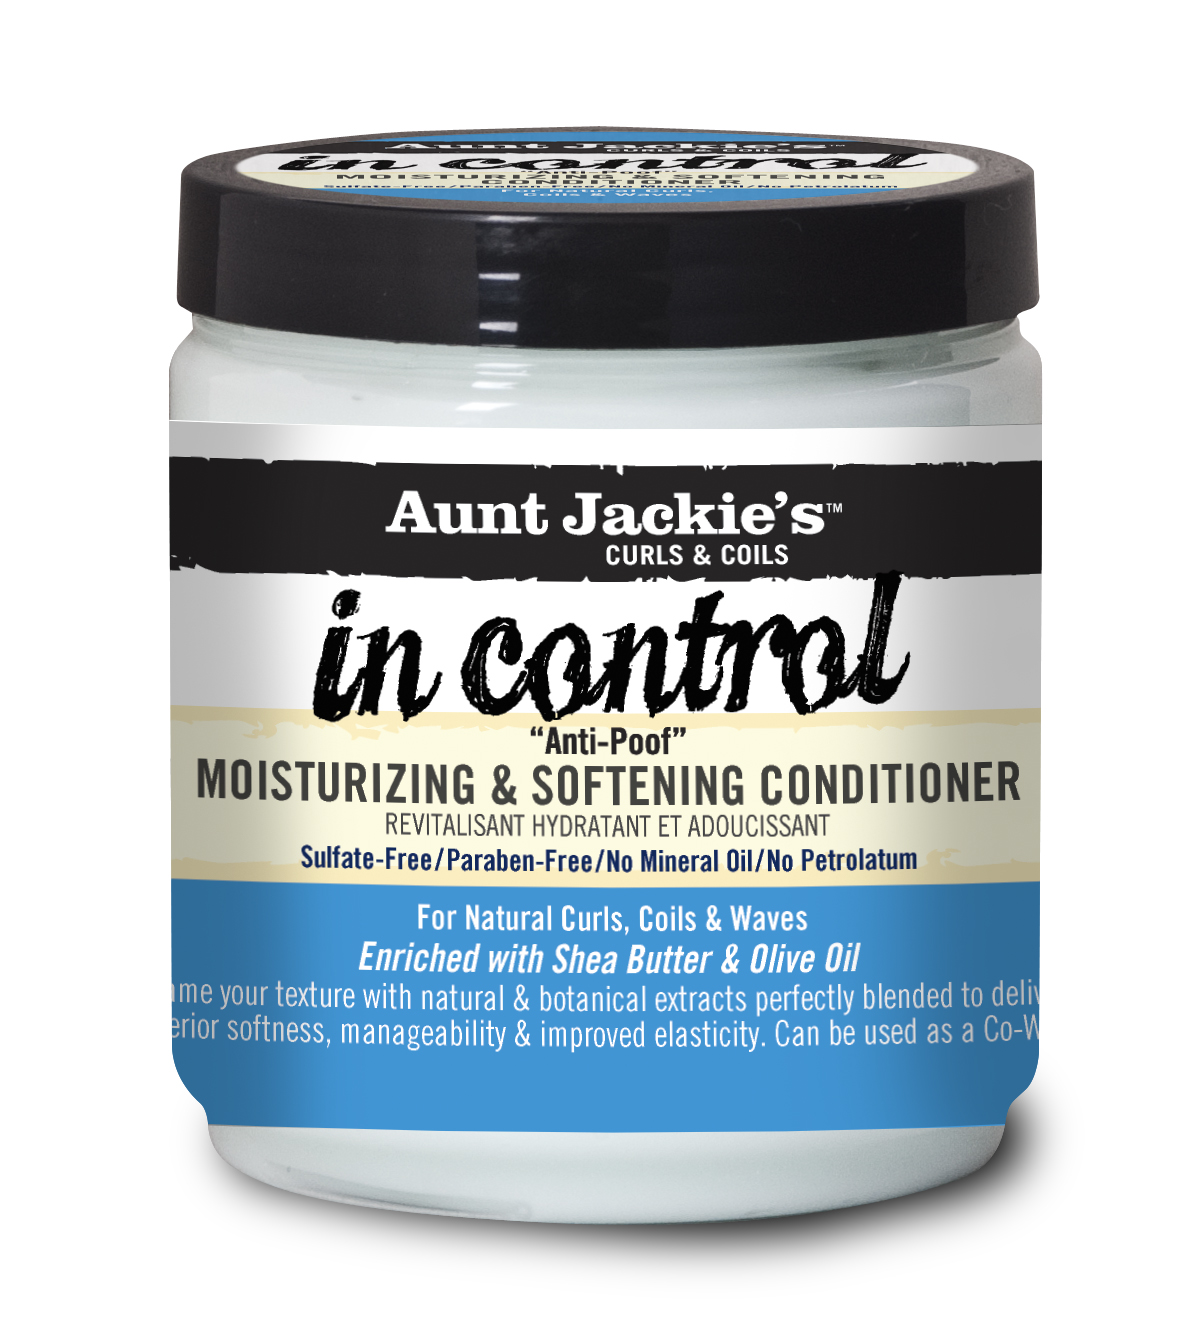 Aunt Jackie's Curls and Coils In Control Anti-Poof Moisturizing & Softening Conditioner 15 oz